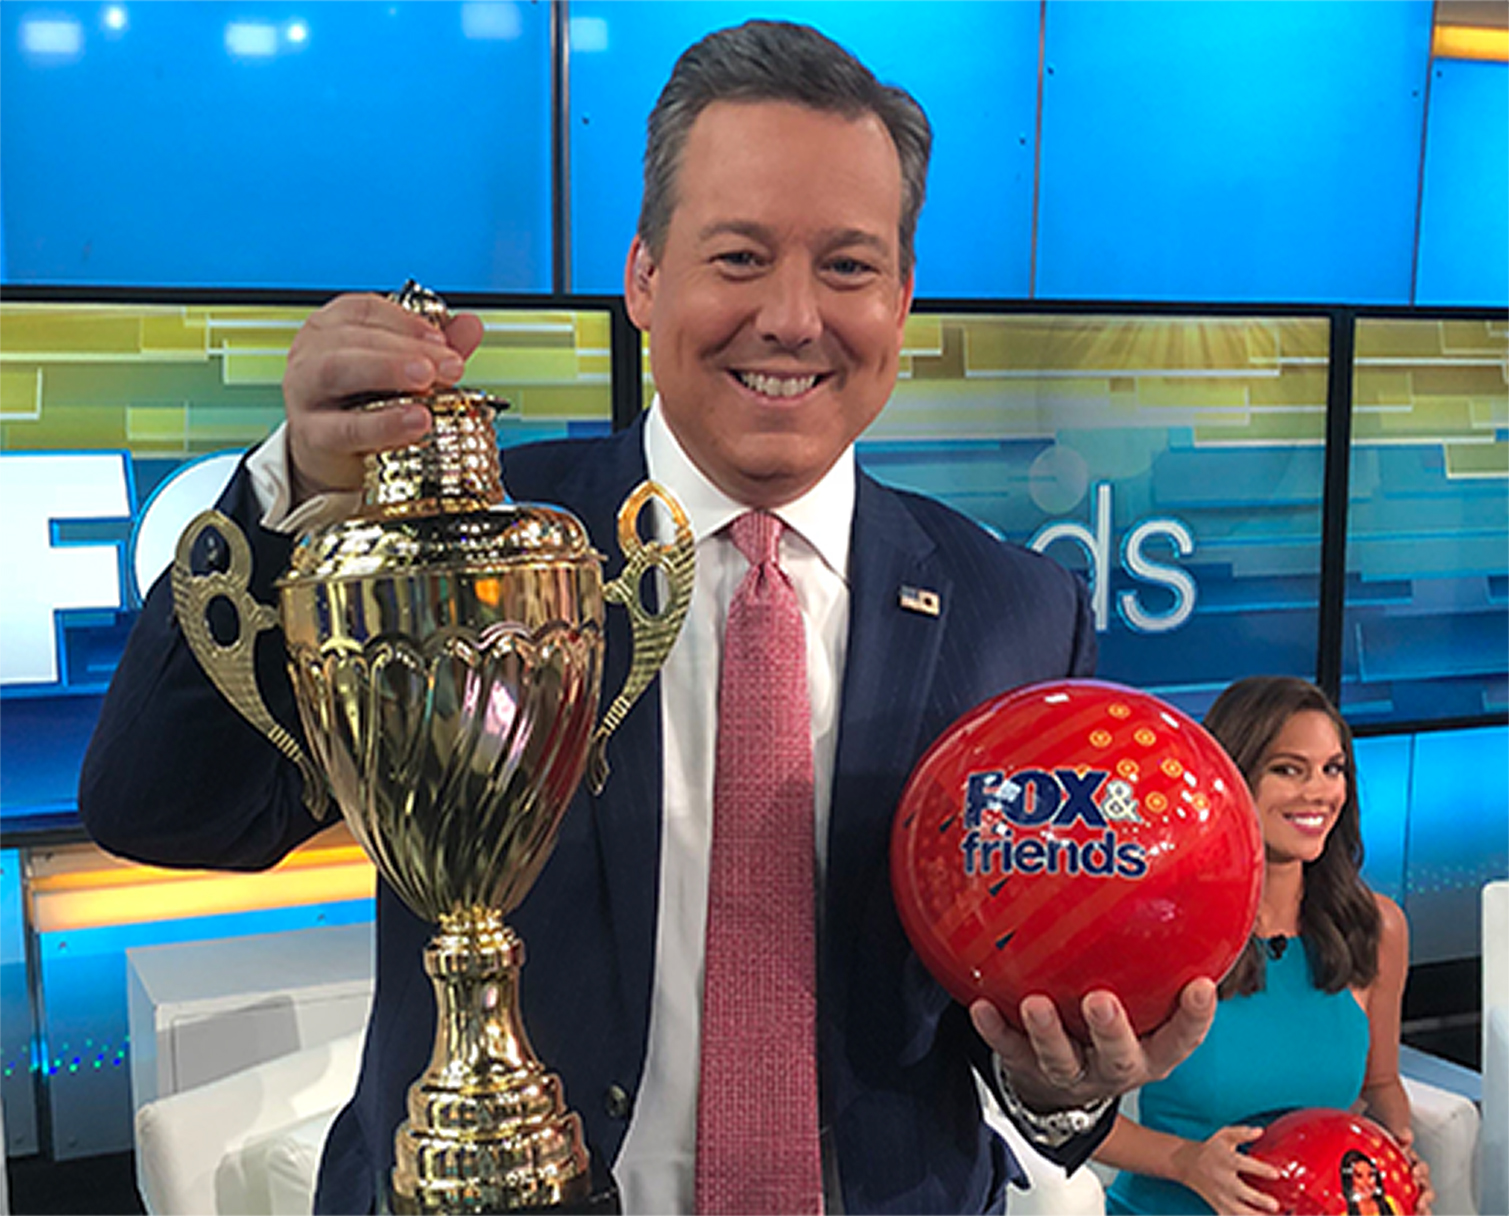 Host with Ball and Trophy